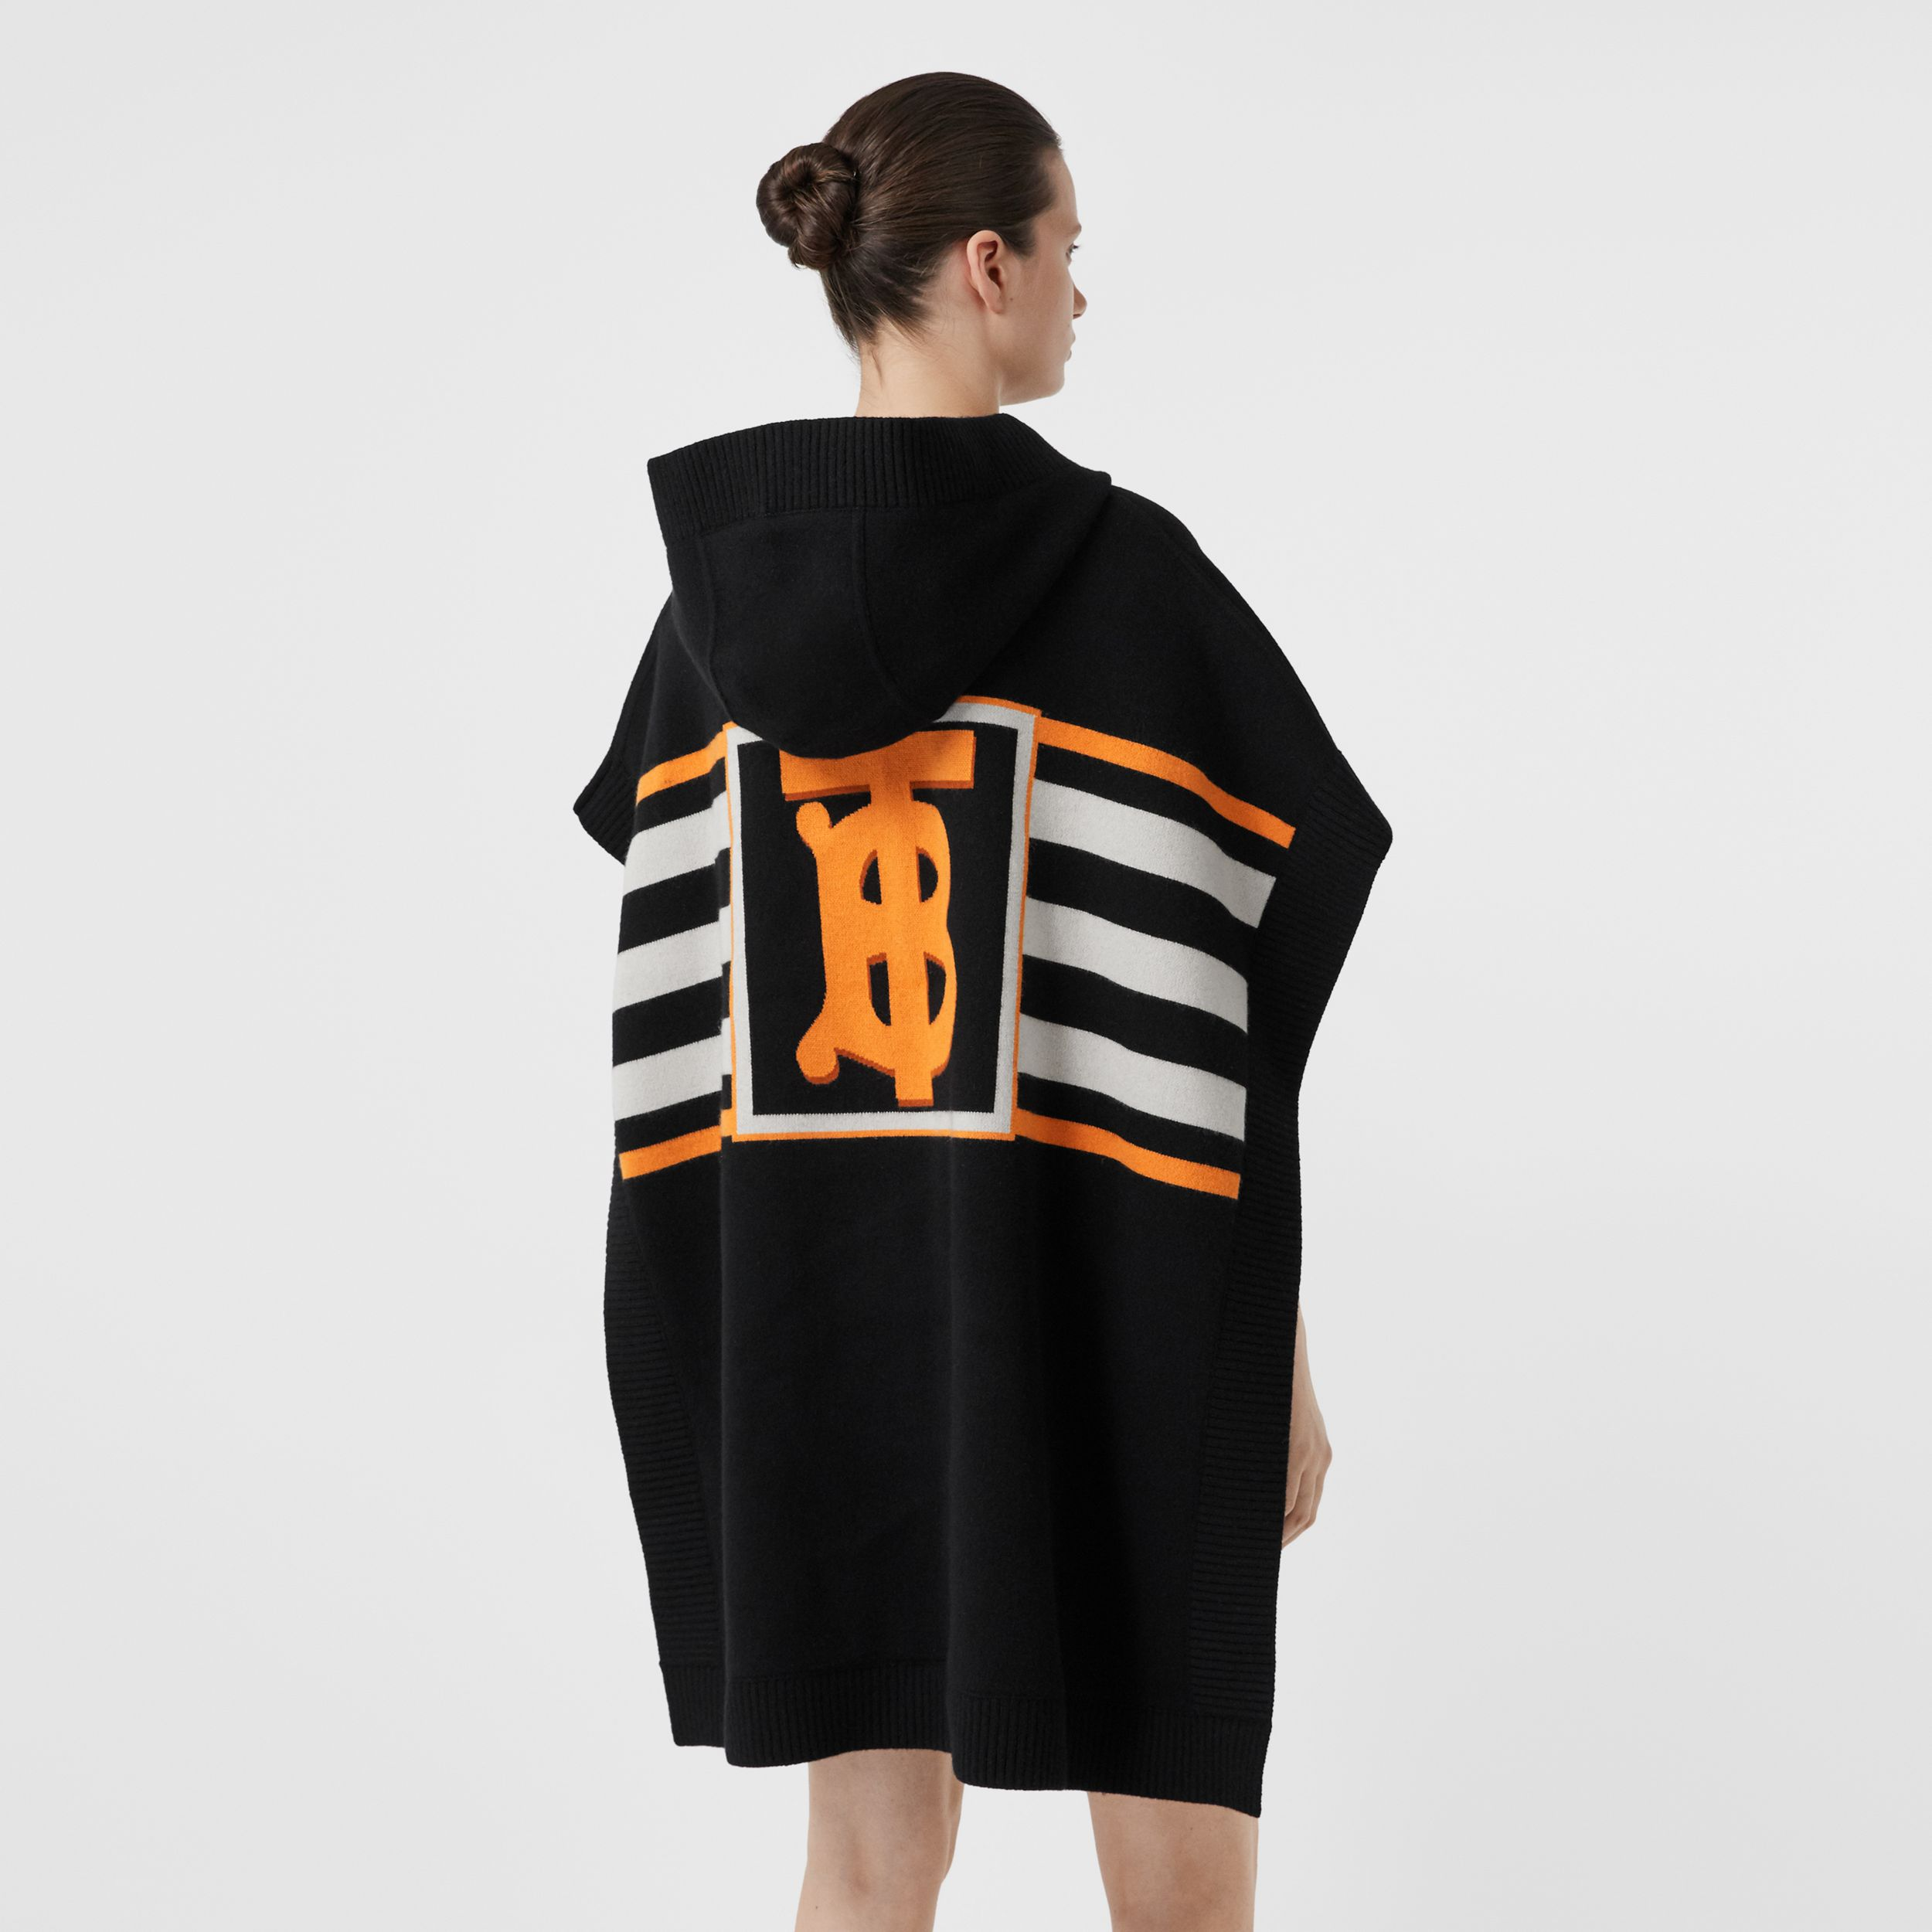 Monogram Motif Intarsia Wool Cashmere Blend Cape in Black - Women | Burberry - 3